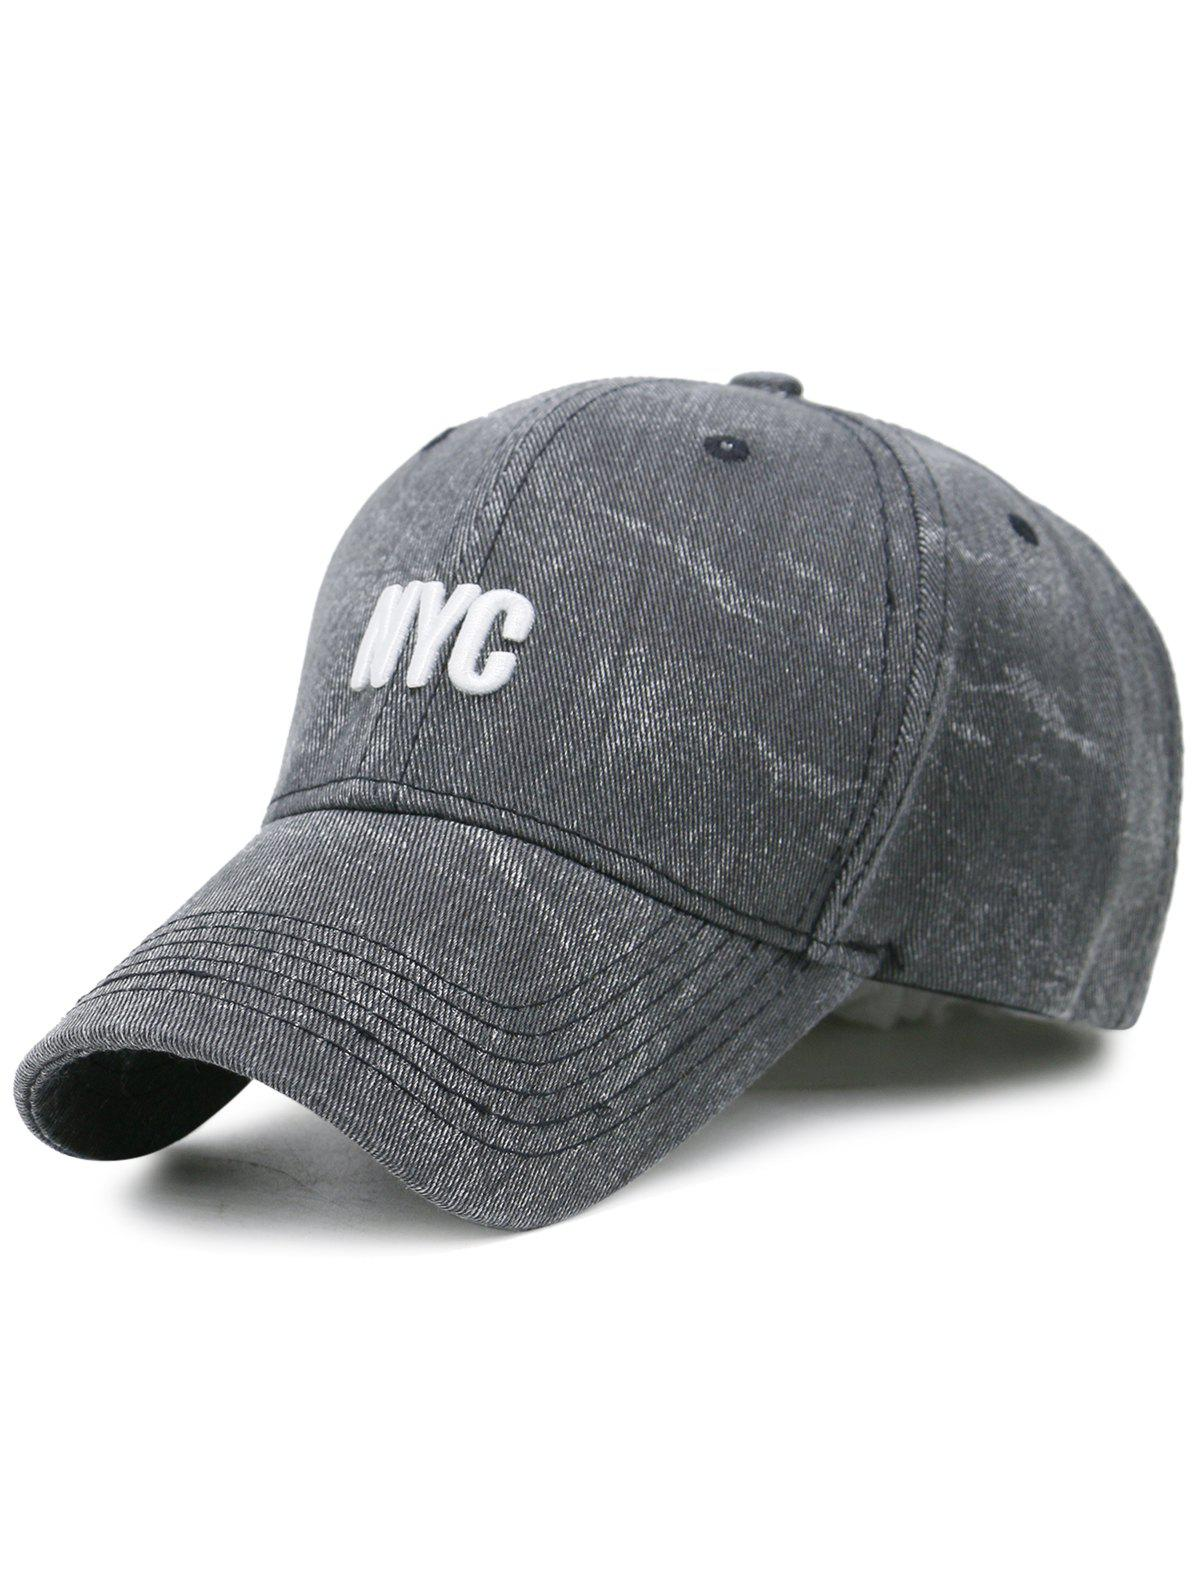 2018 Unique Nyc Embroidery Washed Baseball Hat Black In Hats Online